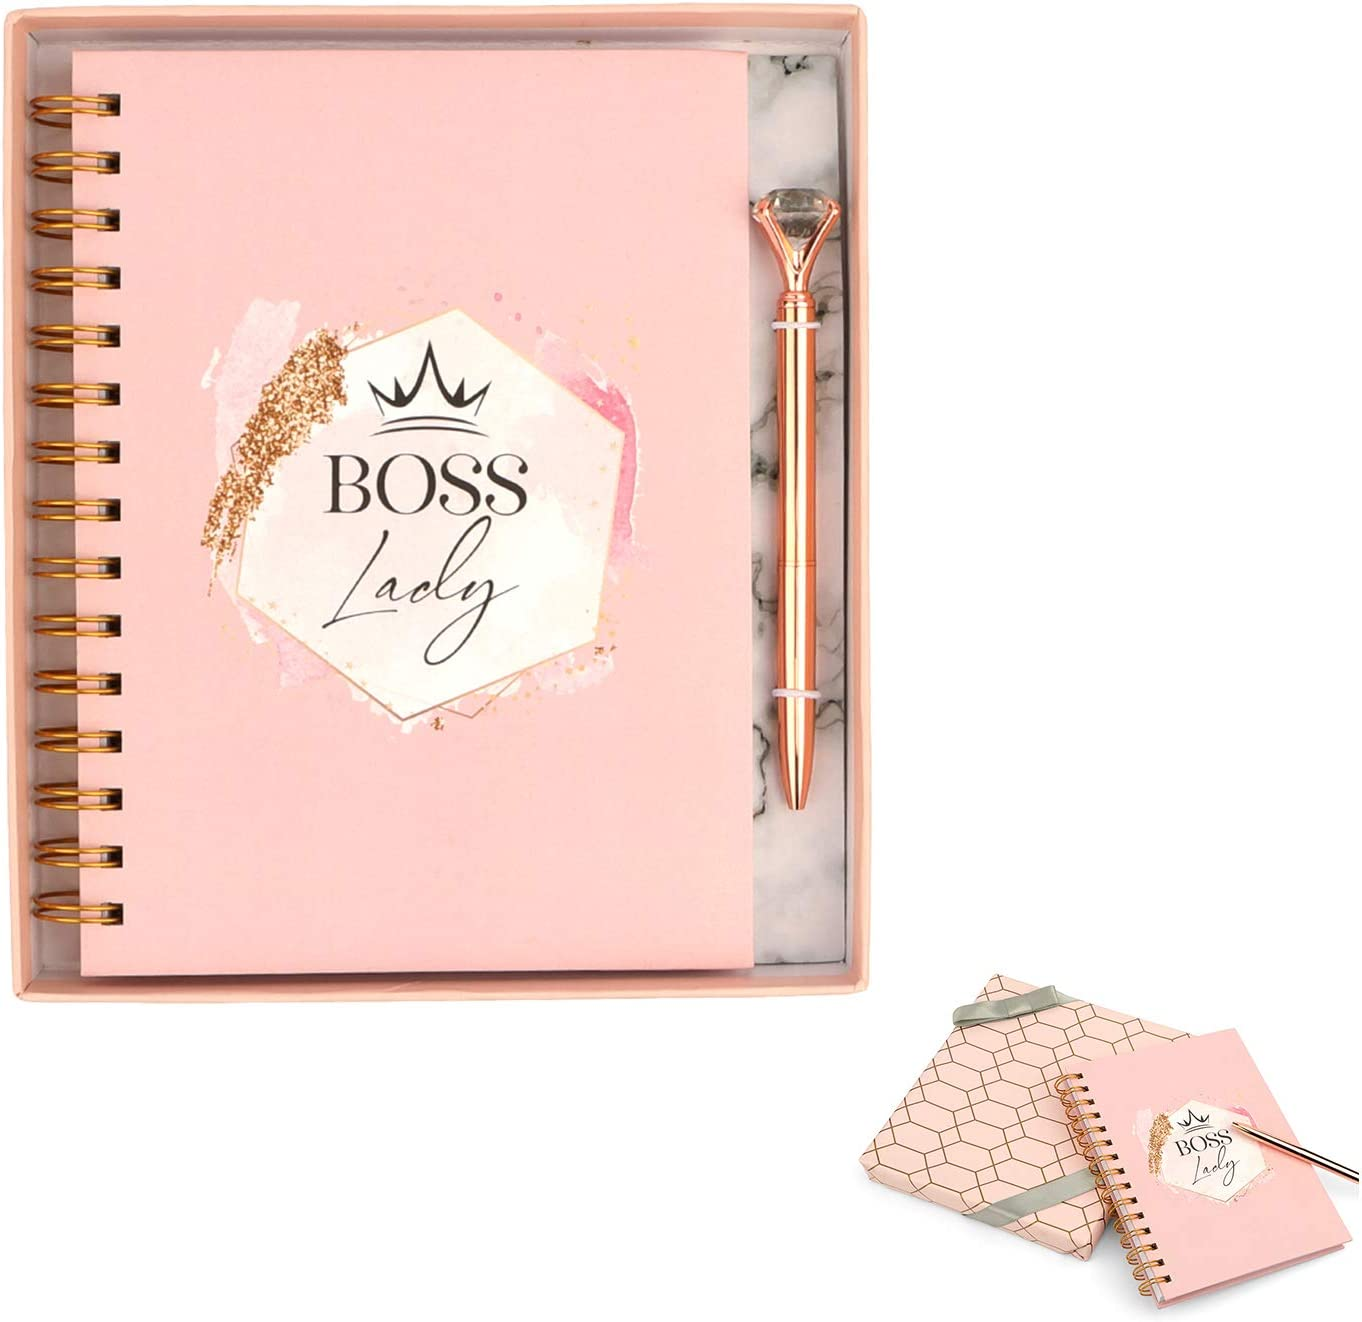 Boss Lady Notebooks for Women I Cute Spiral Journal Notebook with Diamond Pen by NINE ROYAL in a Gift Box - Rose Gold I Hard Cover, Thick and Lined Paper - Great Home or Office I Writing Journal